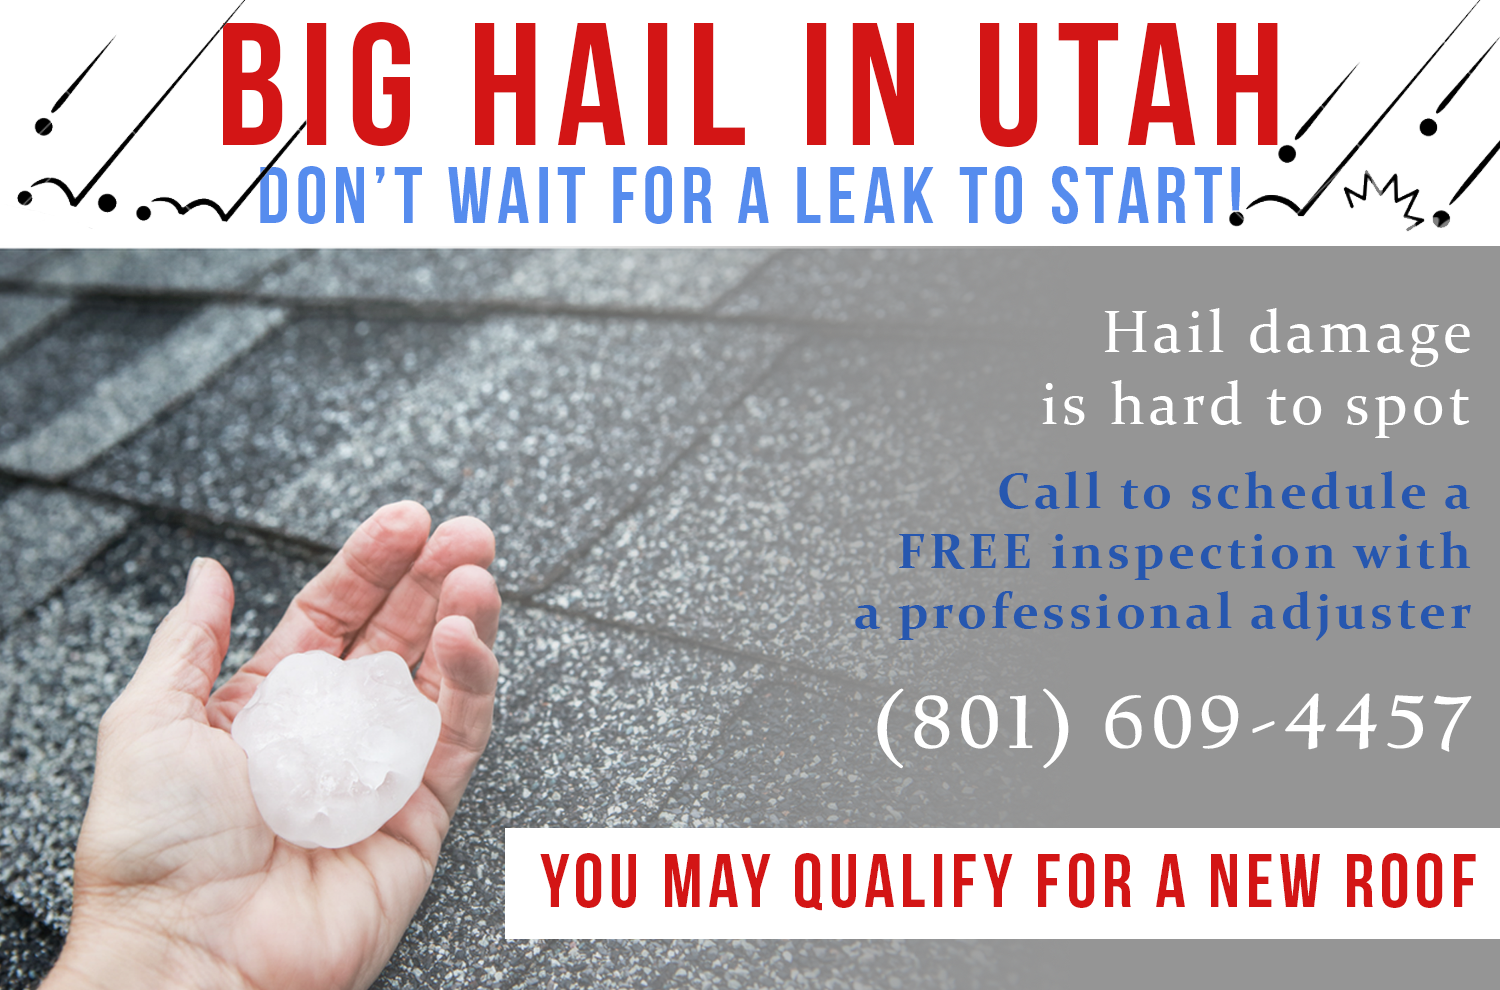 Hail damage to your roof, stucco, gutters? You may qualify for a settlement and a new roof.